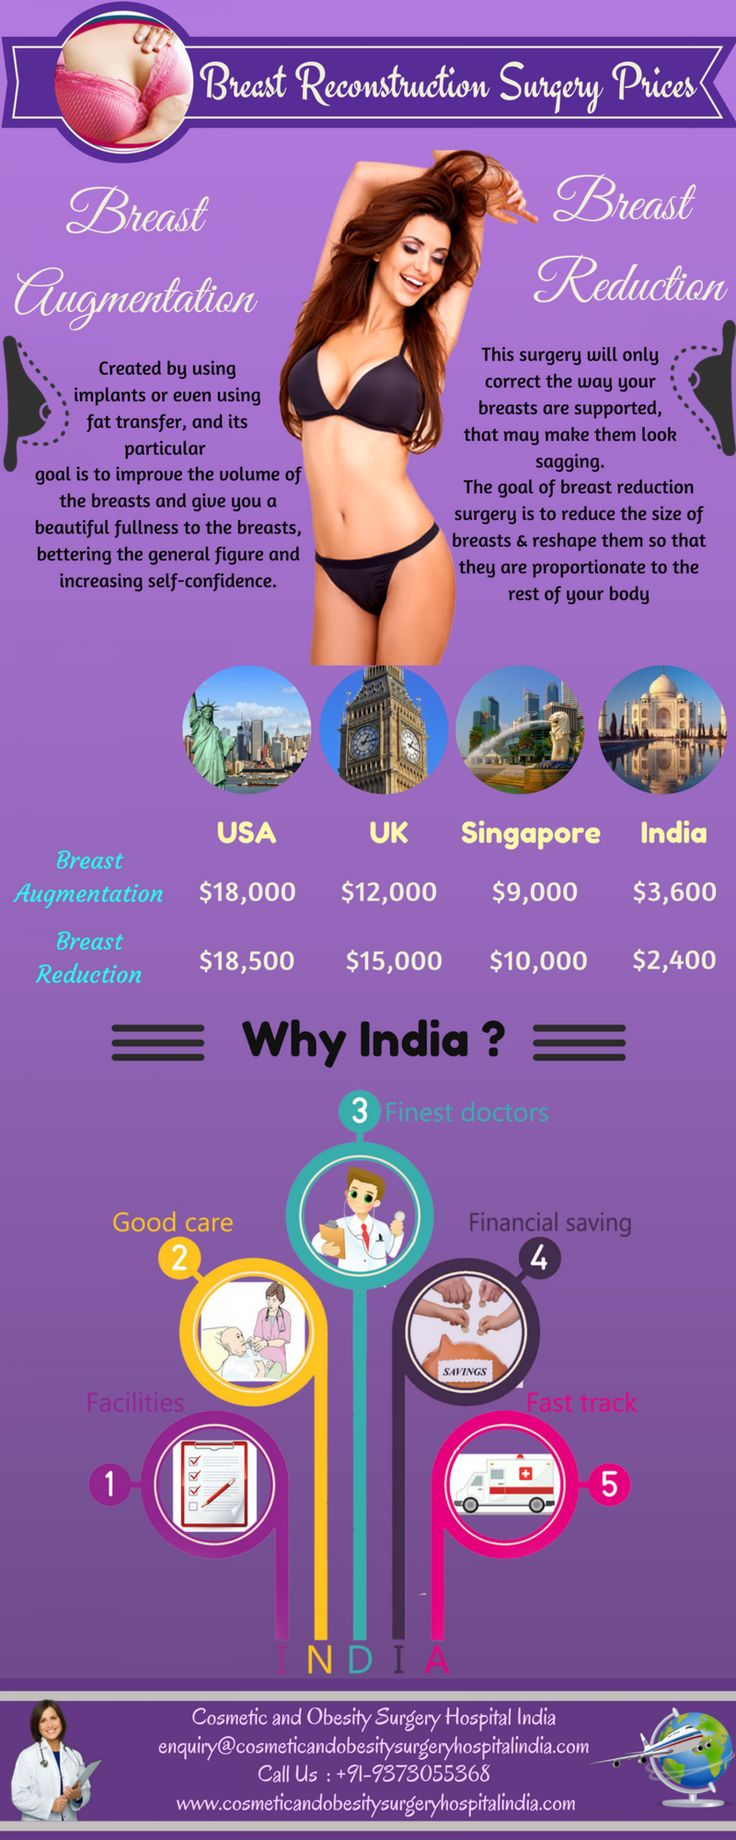 Breast Augmentation & Breast Reduction Surgery Prices in India : All you Need to Know Infographic